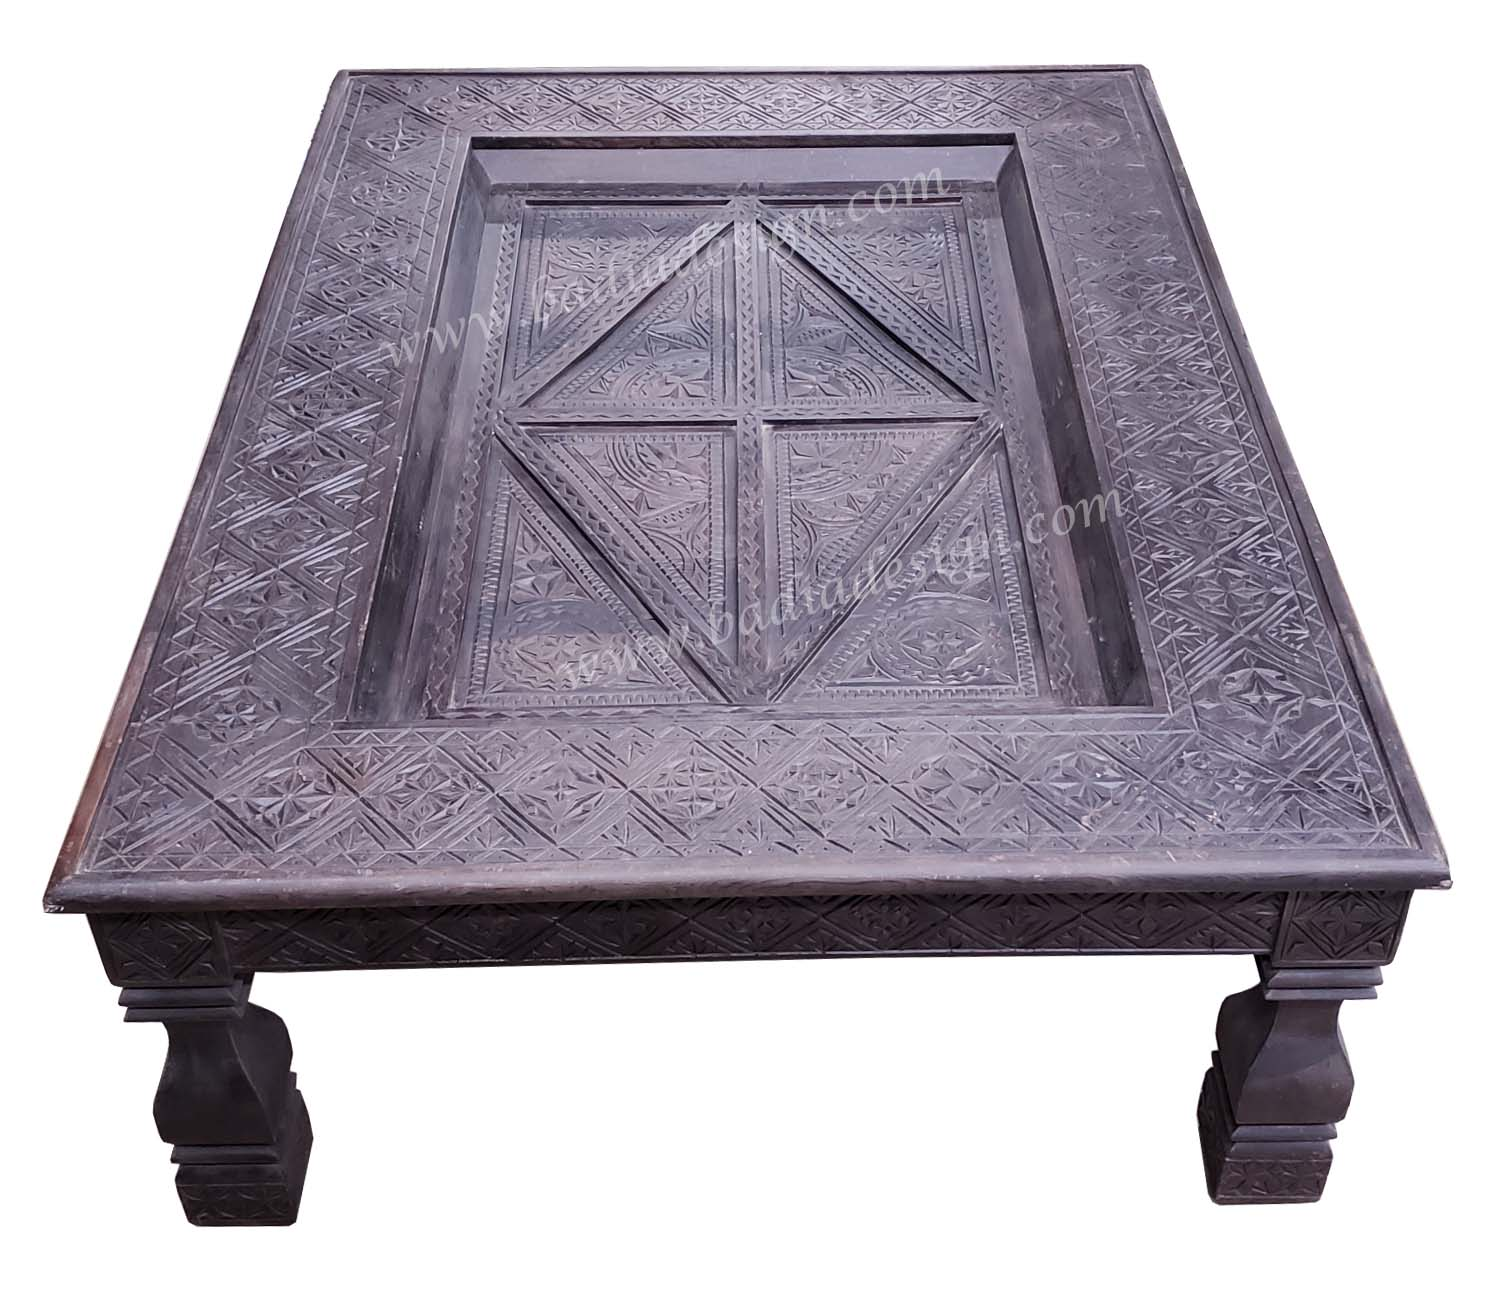 moroccan-hand-carved-rectangular-shaped-wooden-coffee-table-cw-st050-1.jpg